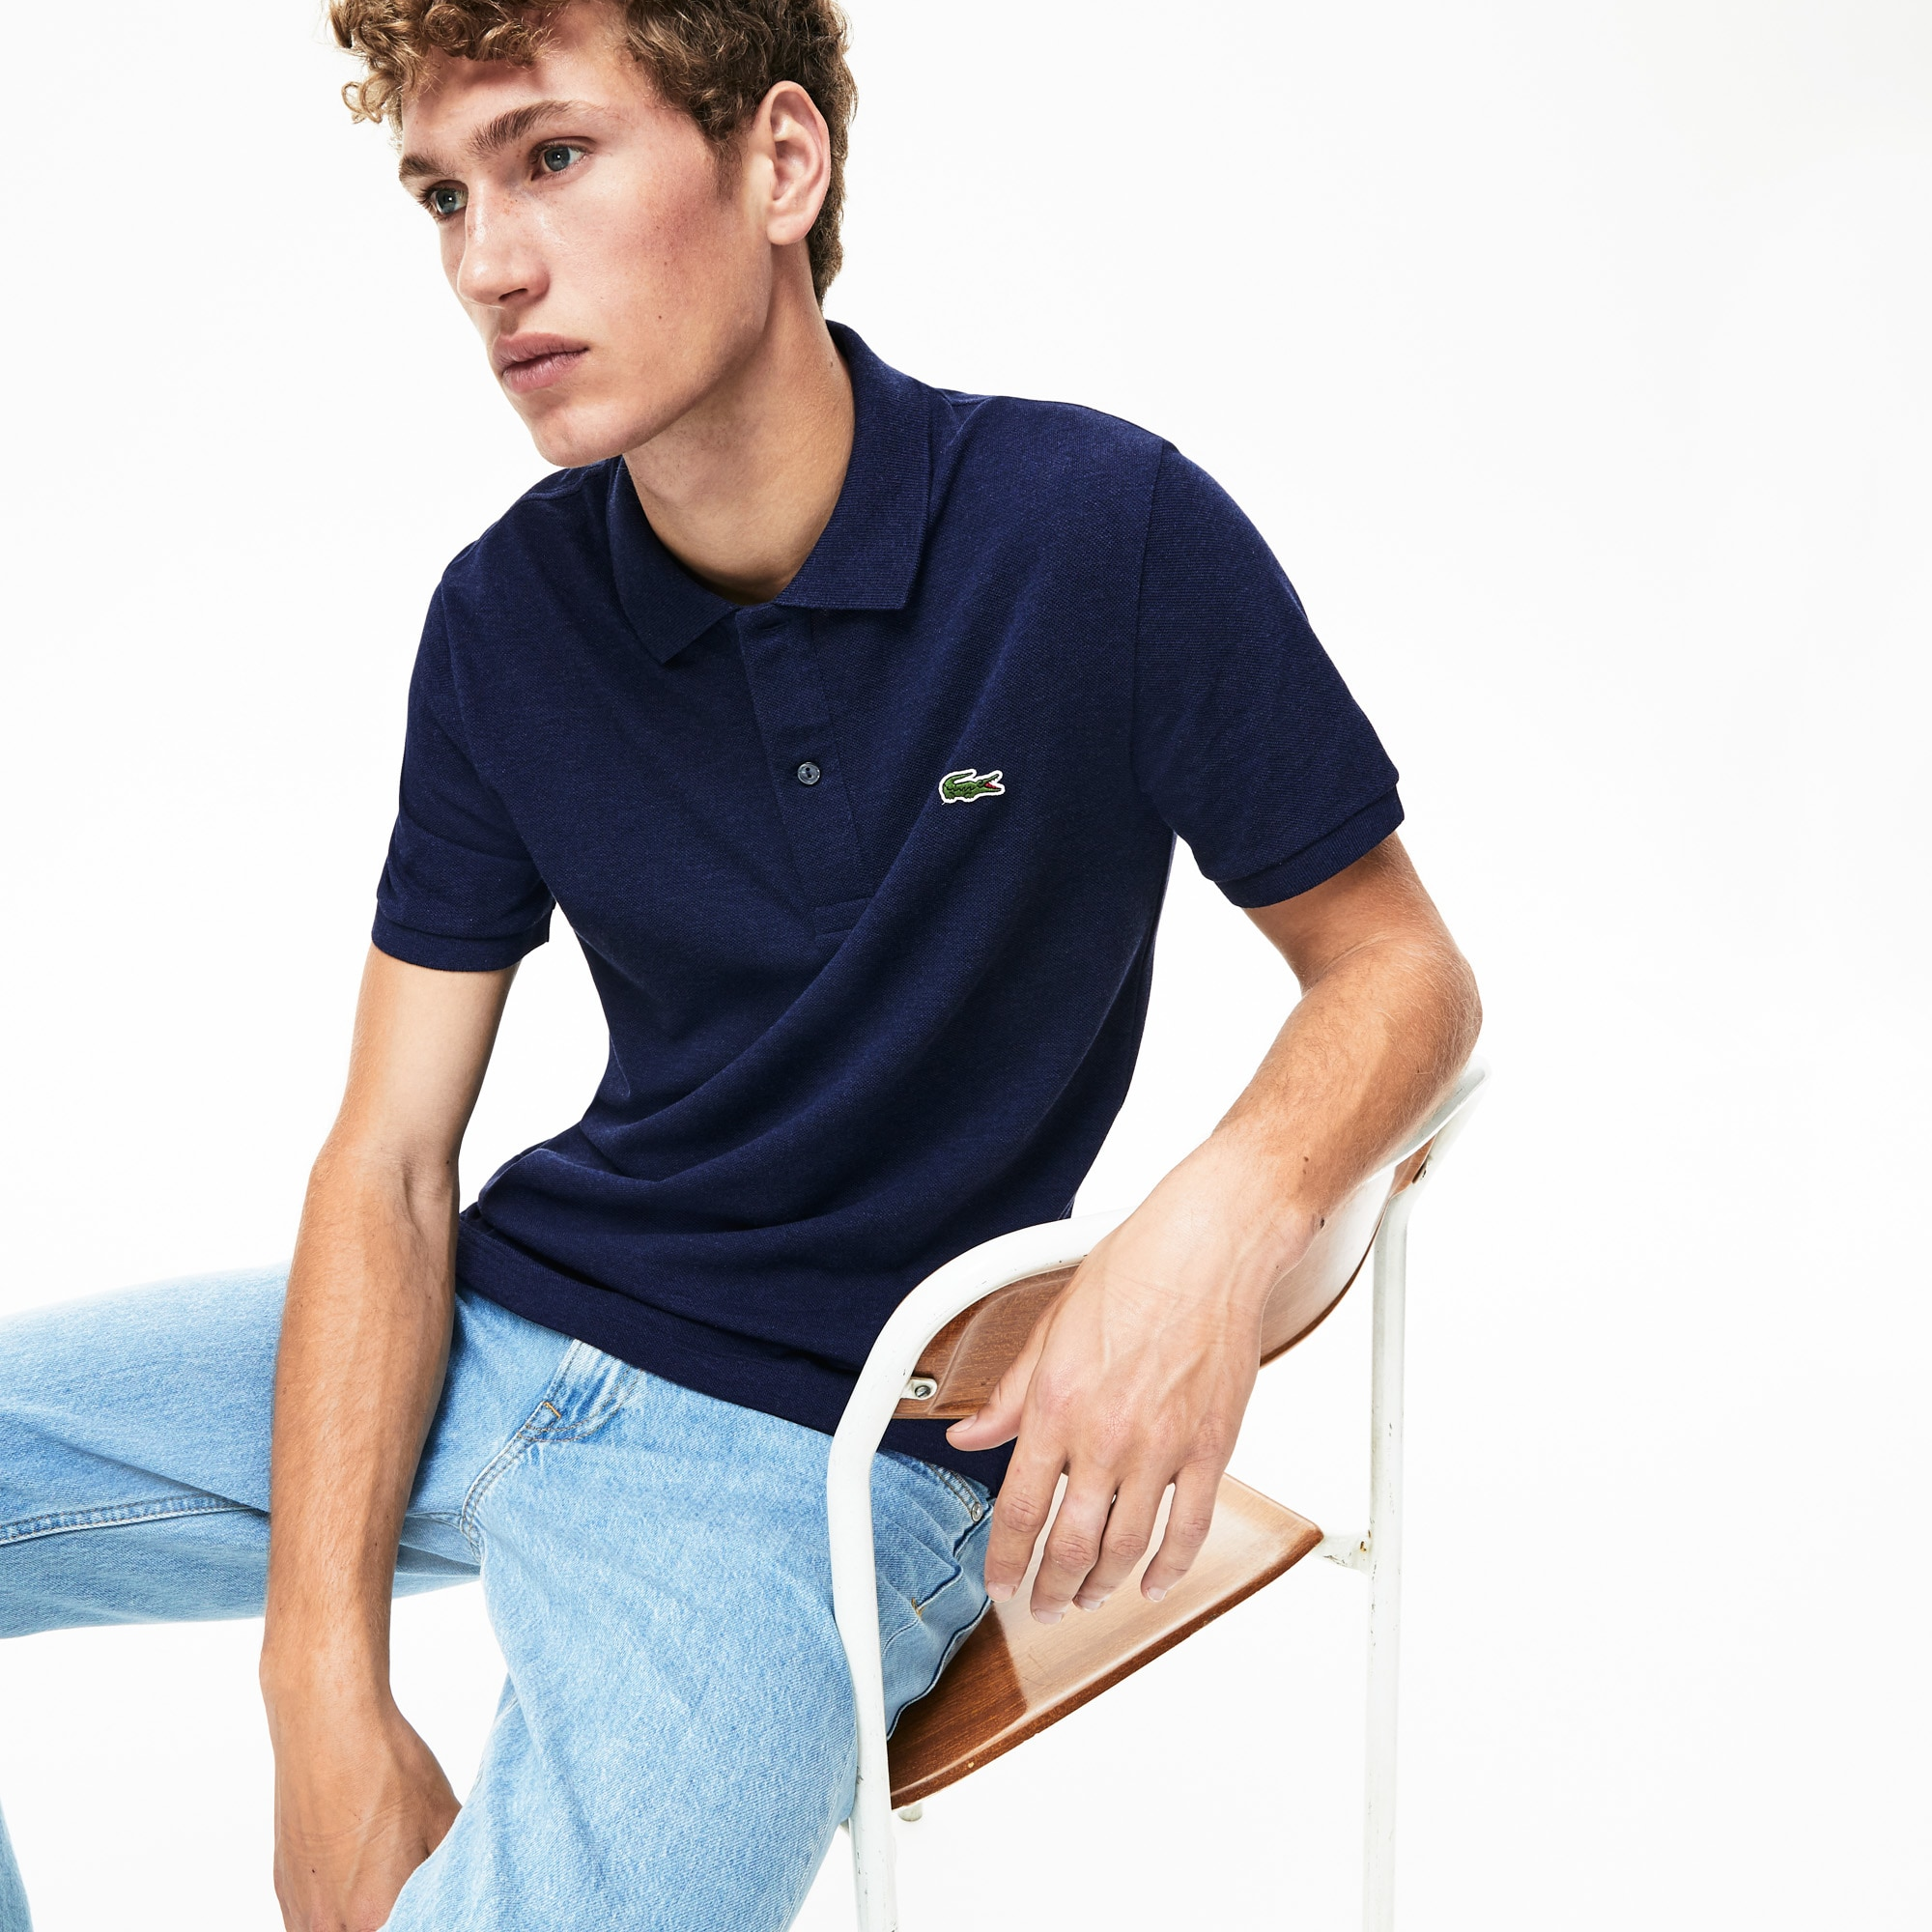 106c9fa240 Men's Polo Shirts | Polo shirts for men | LACOSTE